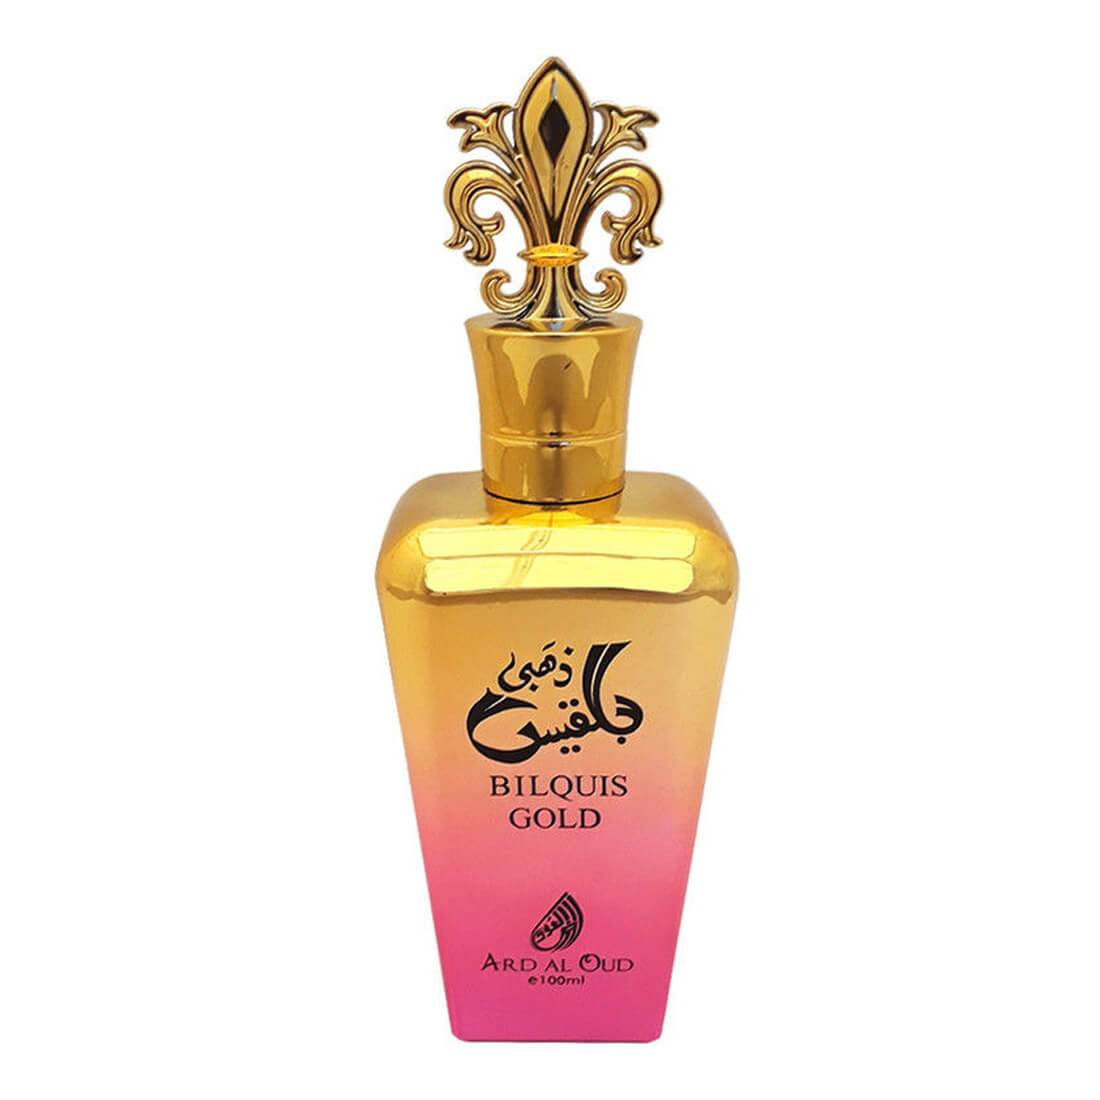 Ard Al Oud Bilquis Gold Spray - 100ml